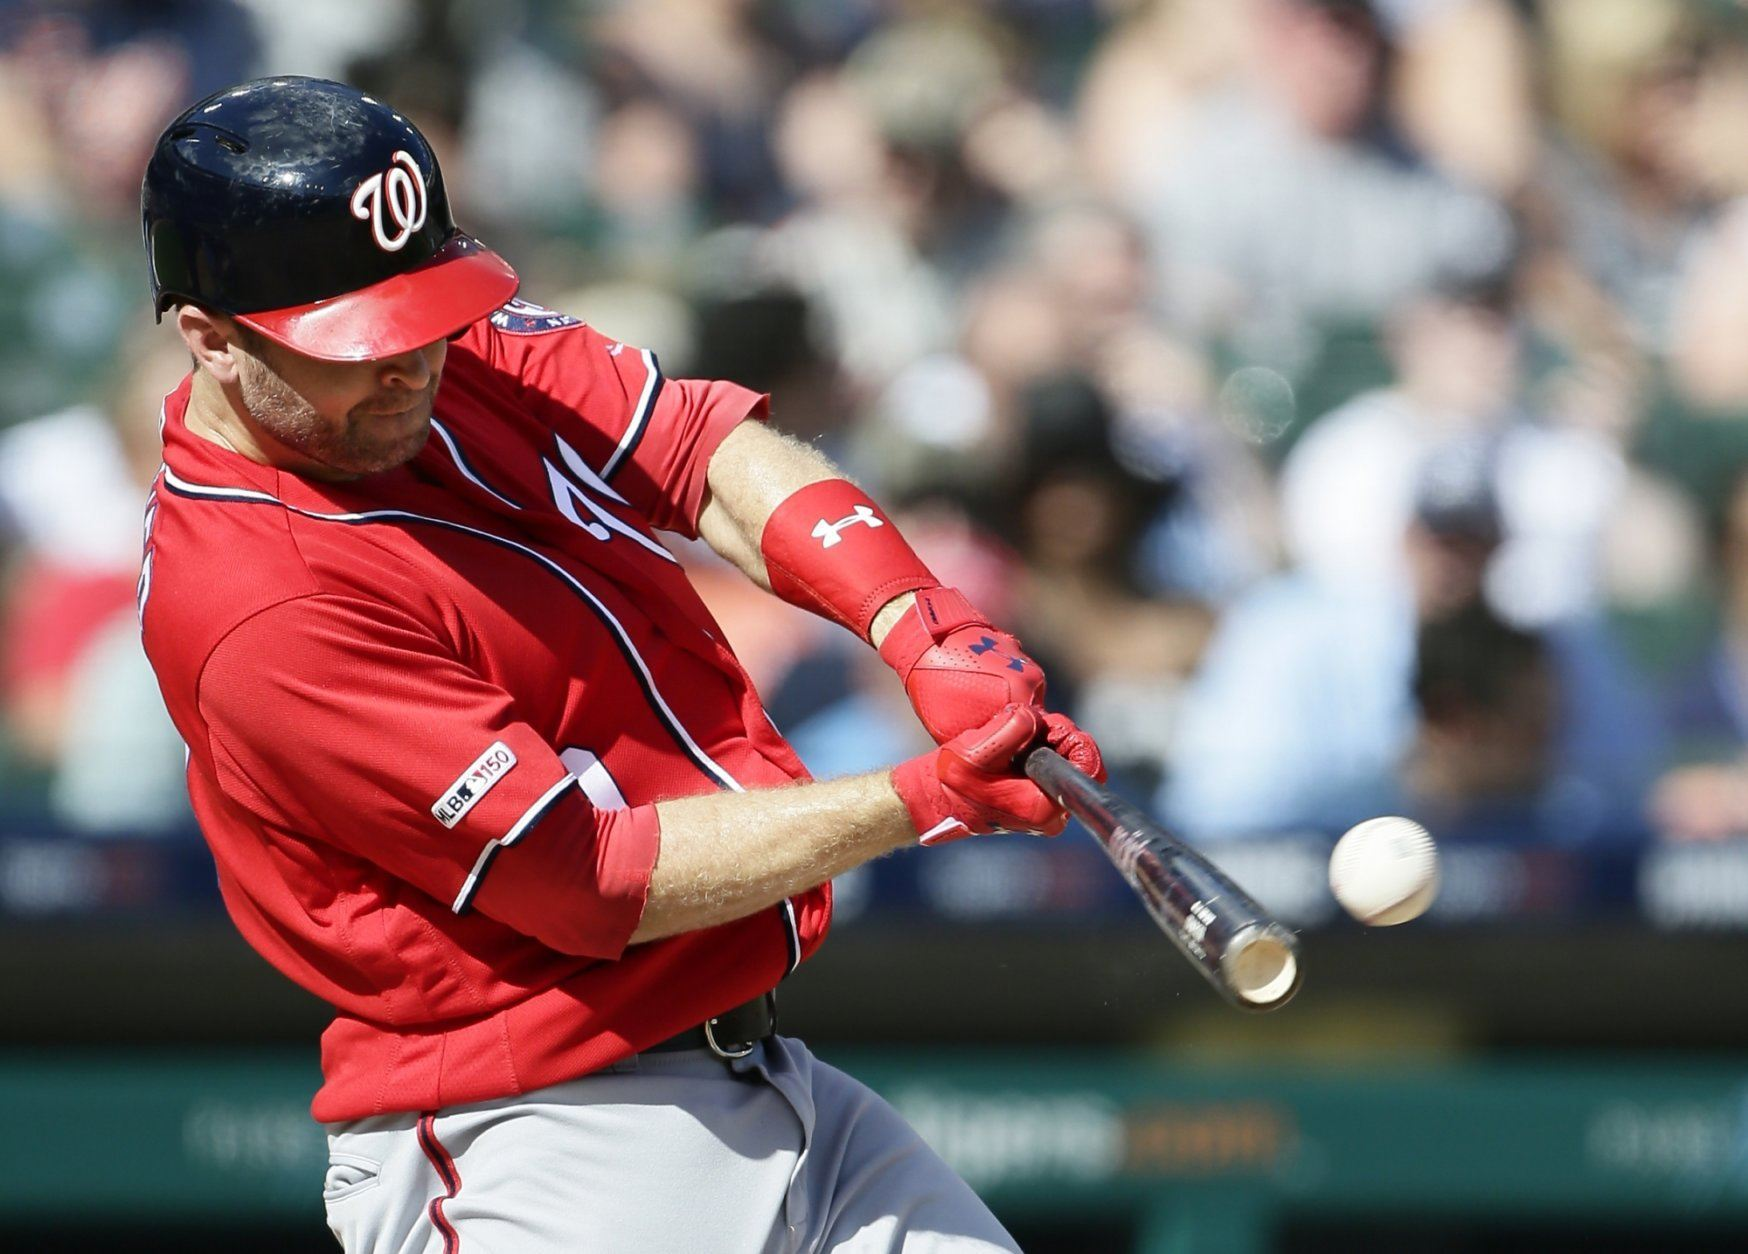 Washington Nationals' Brian Dozier doubles to drive in teammate Juan Soto against the Detroit Tigers during the fourth inning of a baseball game Saturday, June 29, 2019, in Detroit. (AP Photo/Duane Burleson)